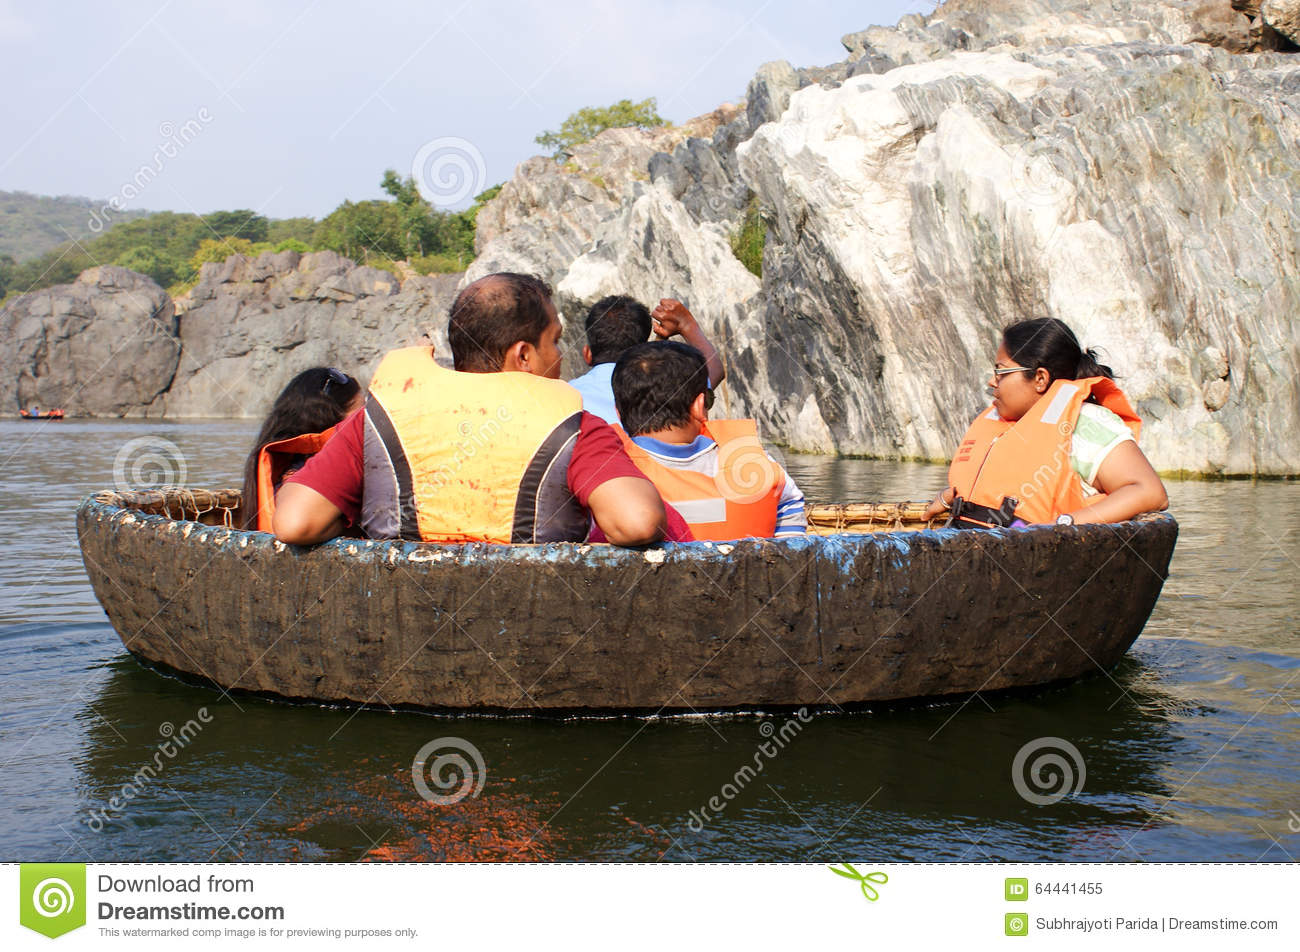 A Tourist Family On A Coracle Ride At Hogenakkal Falls, Tamil Nadu.